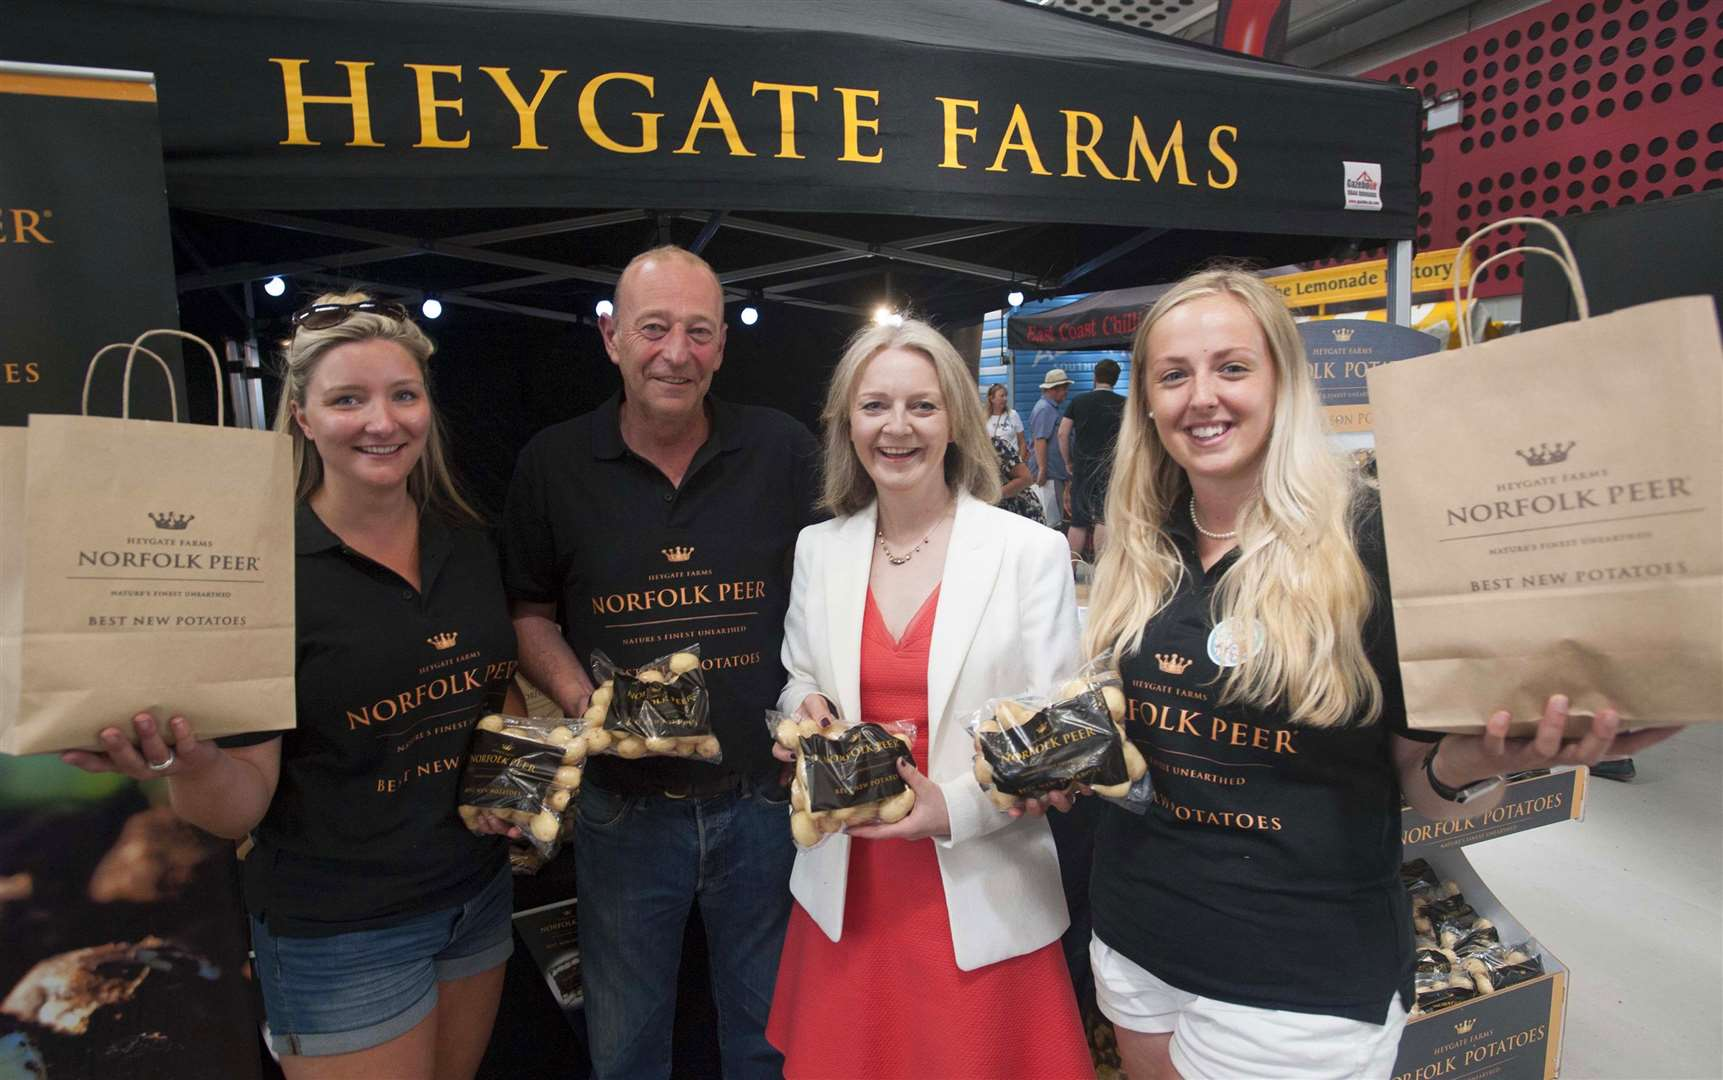 MP Elizabeth Truss at The Royal Norfolk Show Pictured with local Business Heygate Farms. FLtoR Jess Green. William Gibbon. Elizabeth Truss (MP), and Leah Richardson. (2788458)